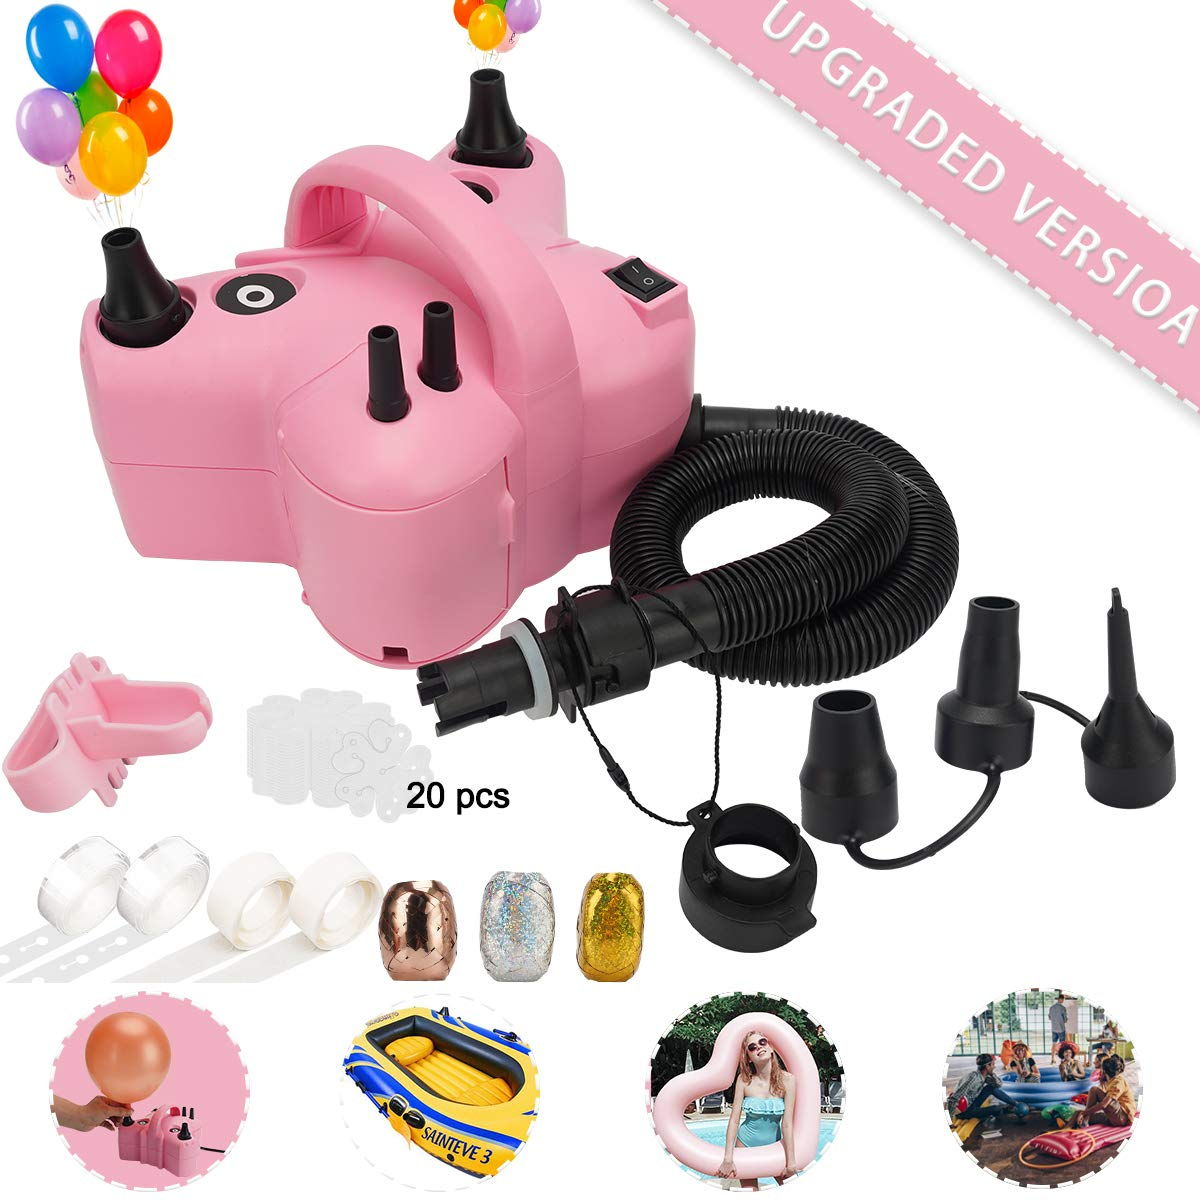 Portable 110V 600W Dual Nozzle Electric Balloon Blower Pump// Inflator Machine